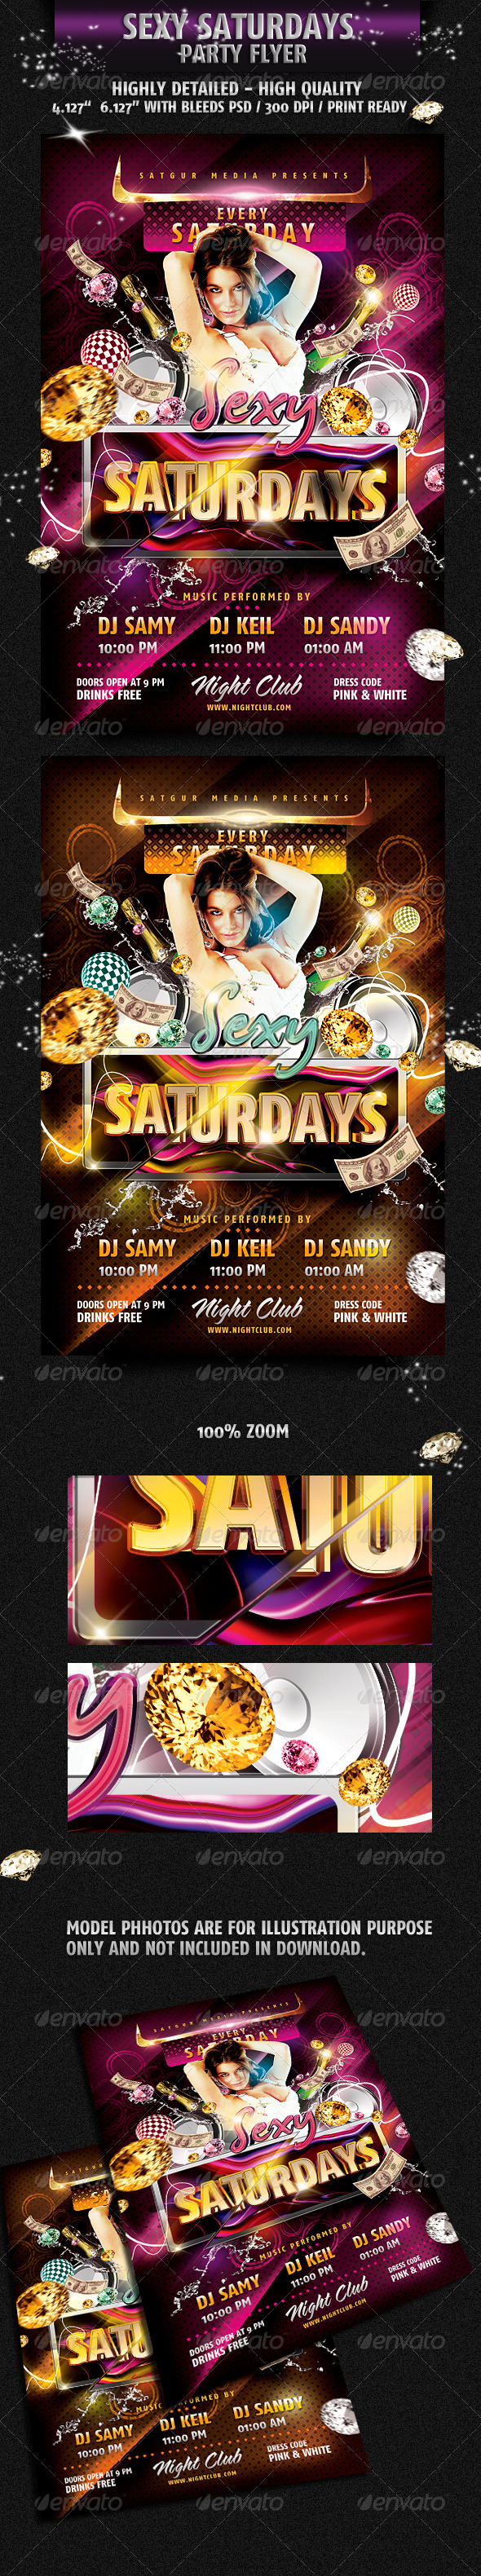 Sexy Saturday Dance Party Flyer  - Flyers Print Templates